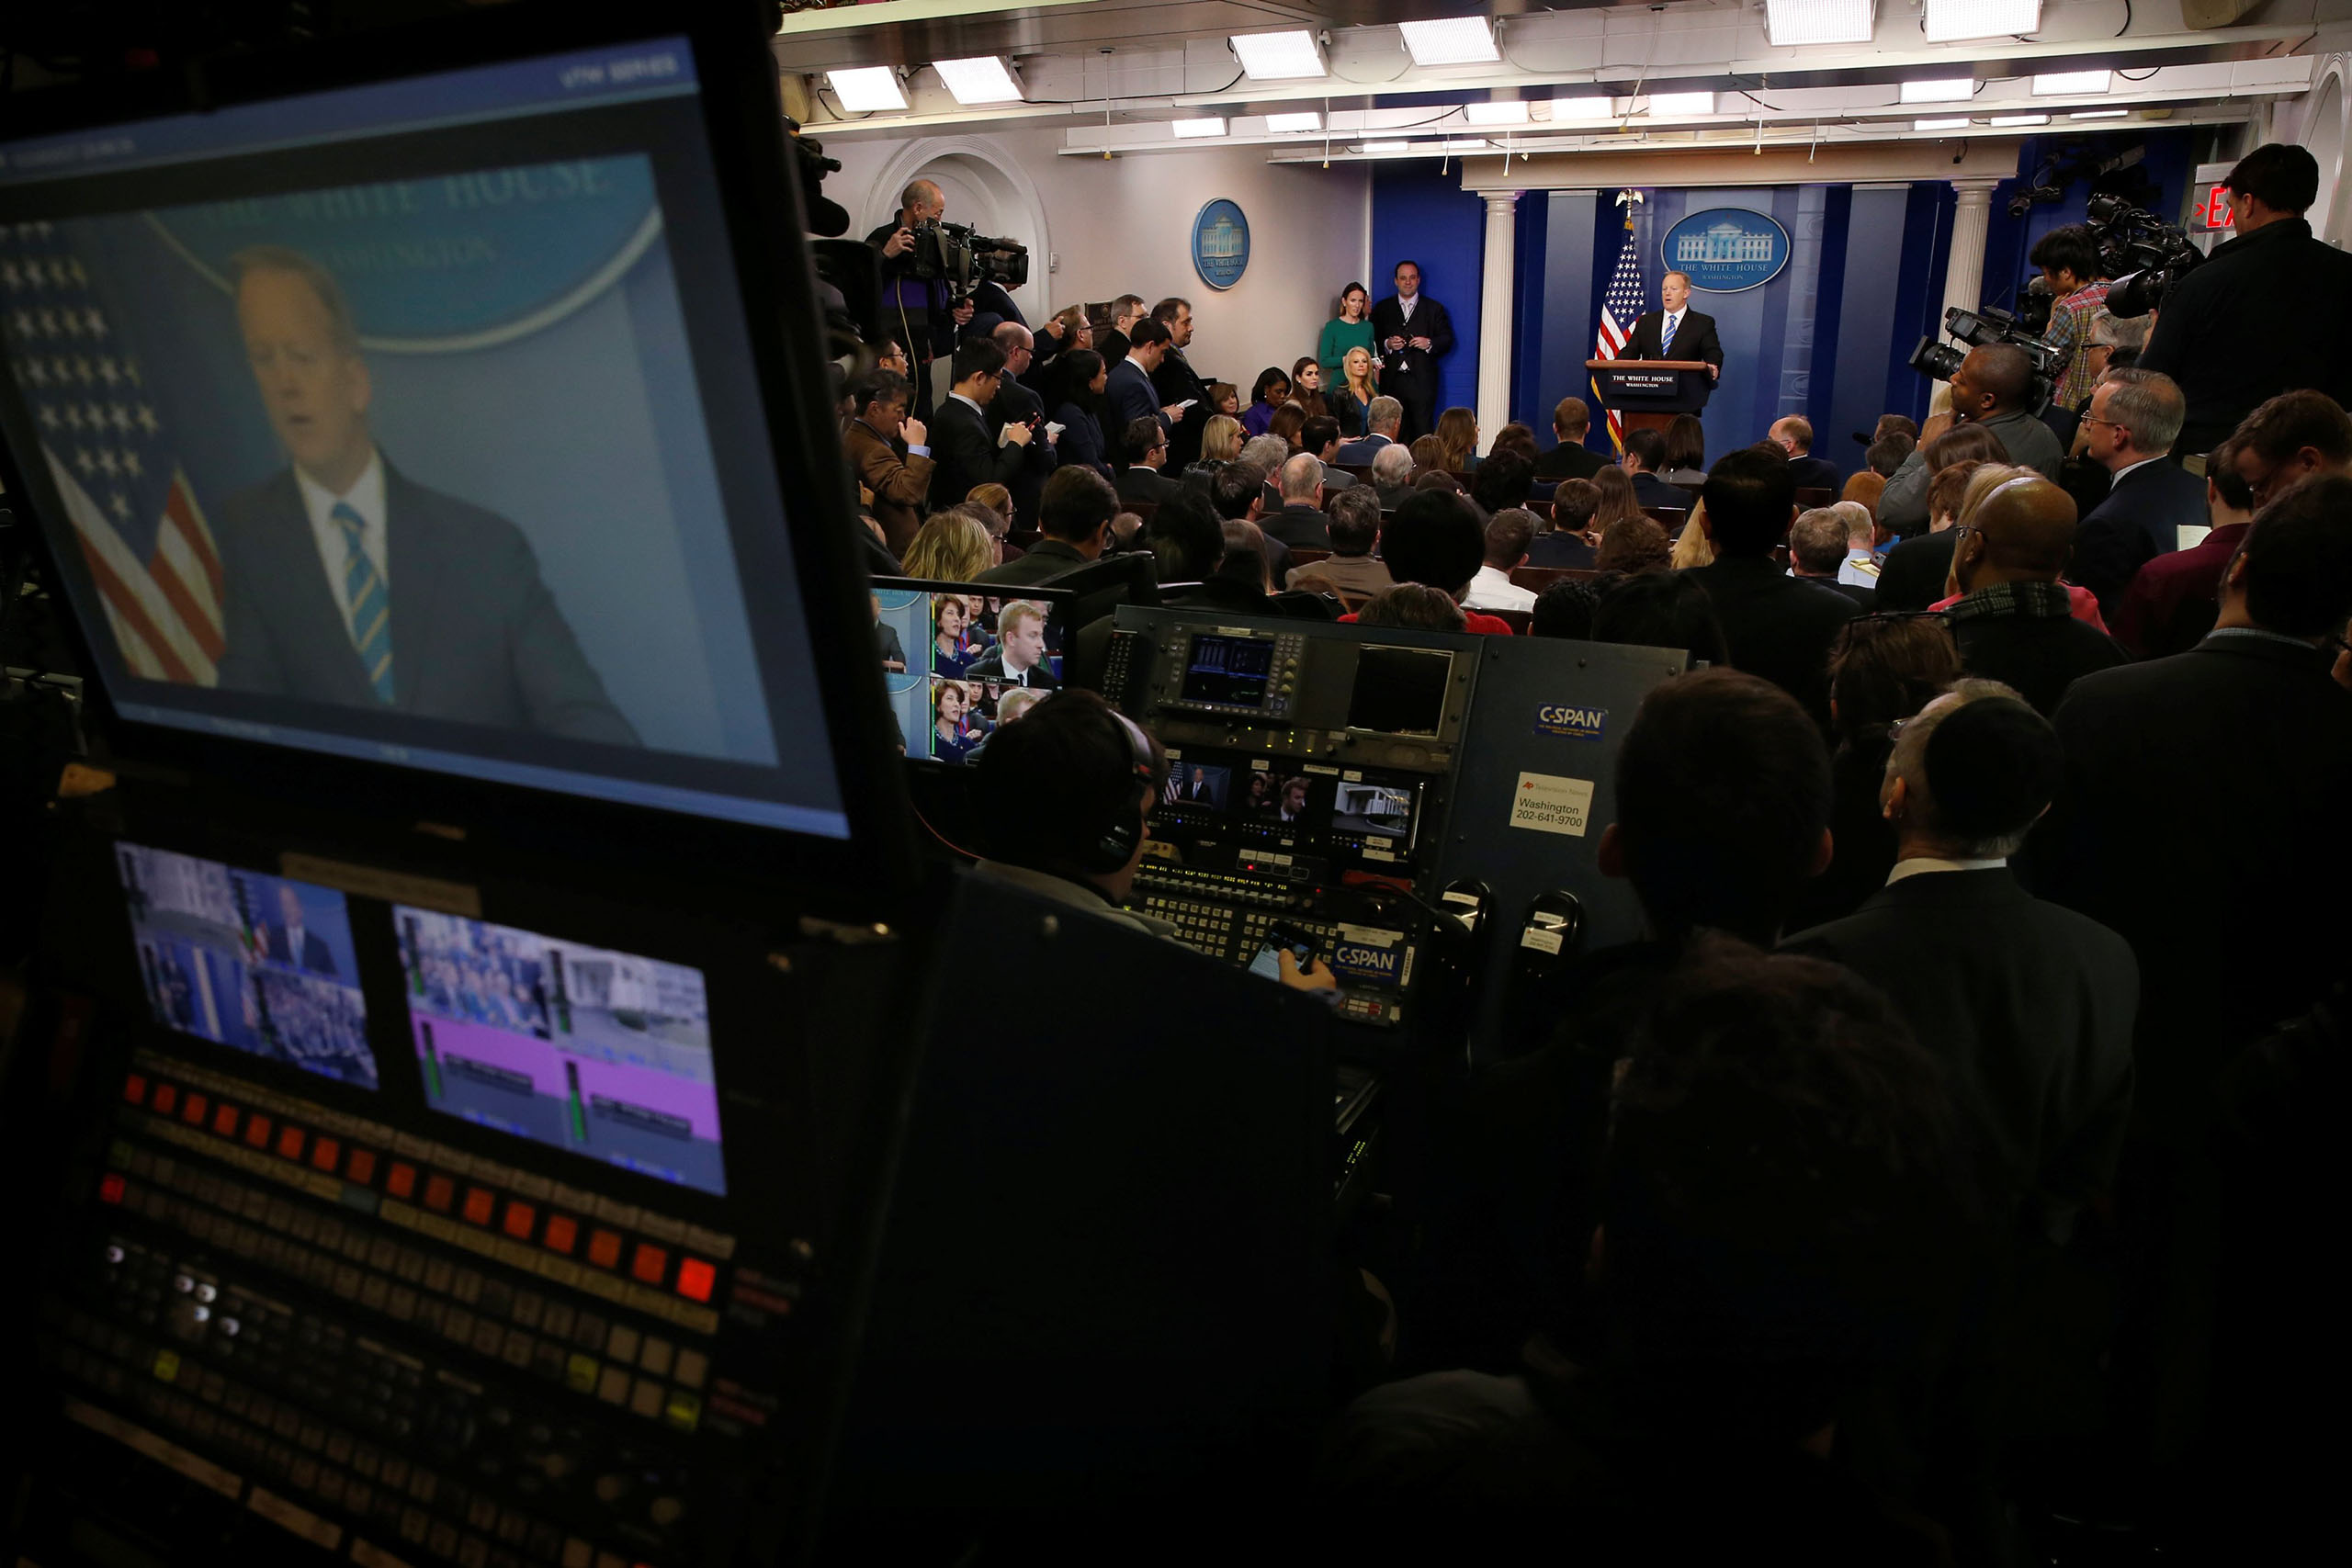 White House spokesman Sean Spicer holds his daily briefing at the White House, on Jan. 24, 2017.